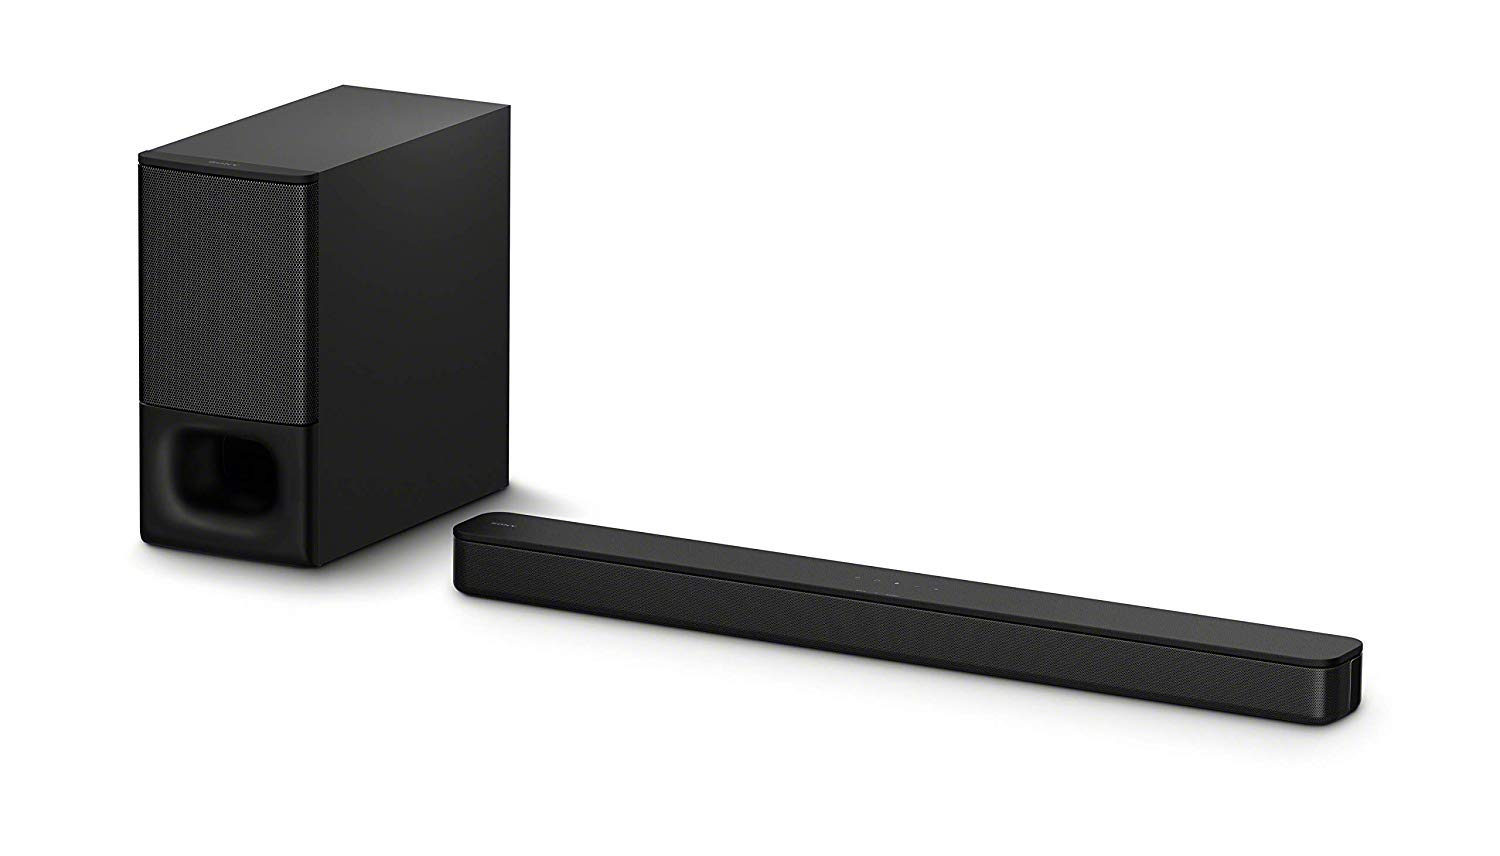 Sony Ht S350 2.1 Ch Soundbar With Powerful Subwoofer And Bluetooth Technology by Sony